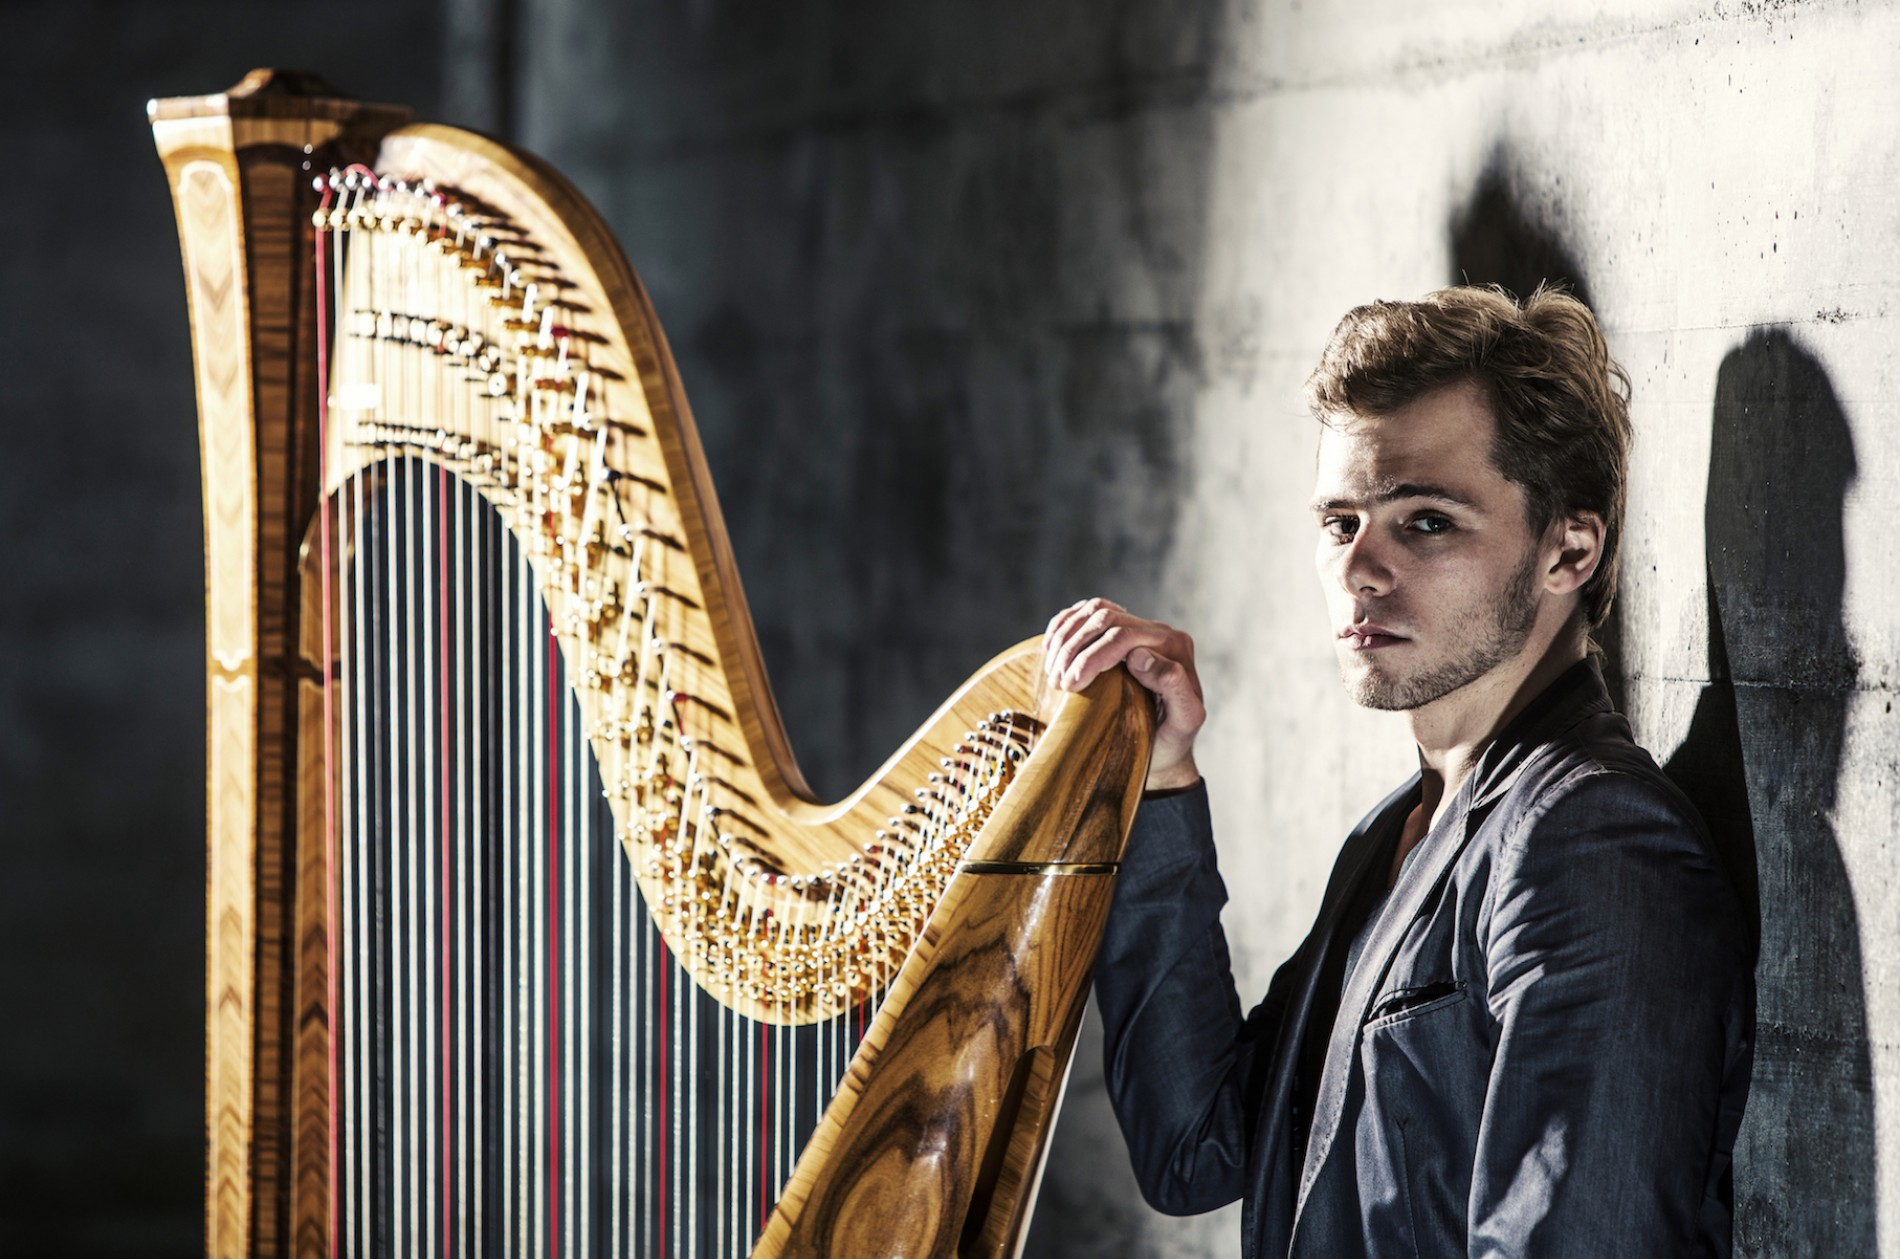 Alexander Boldachev standing with a harp against a brick wall